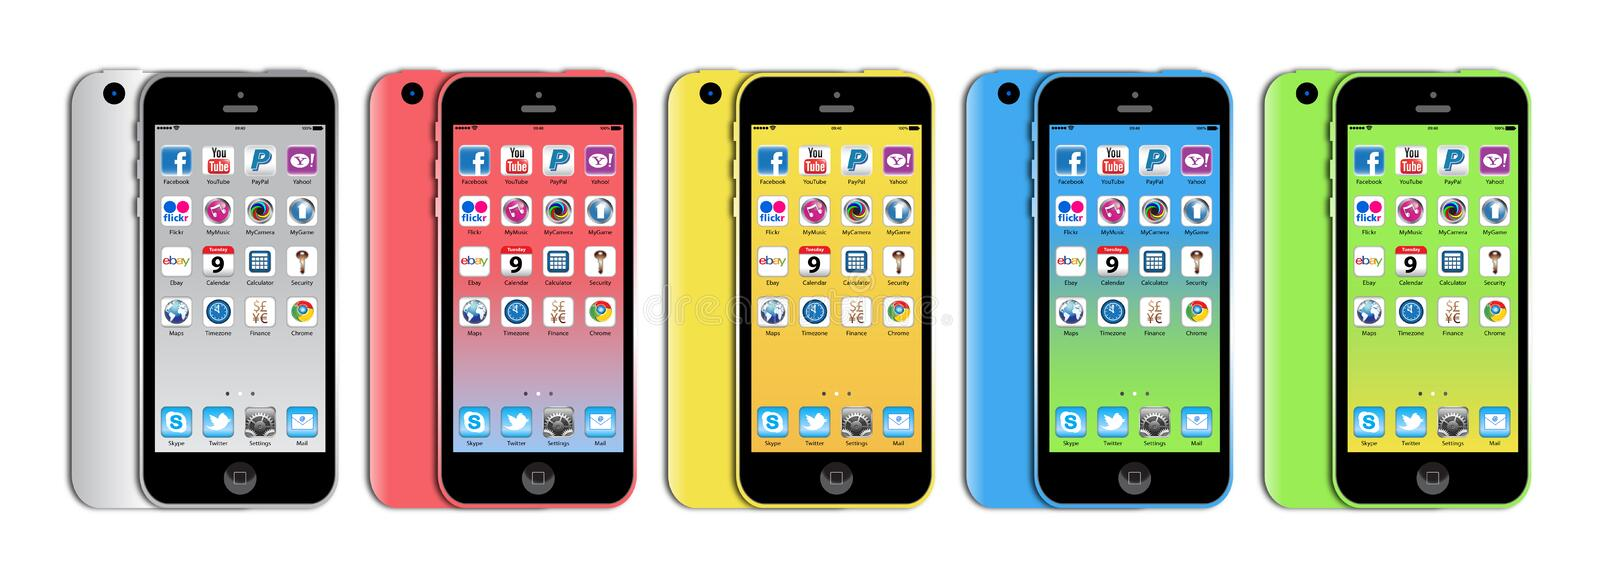 Nieuwe Apple-iphone 5c